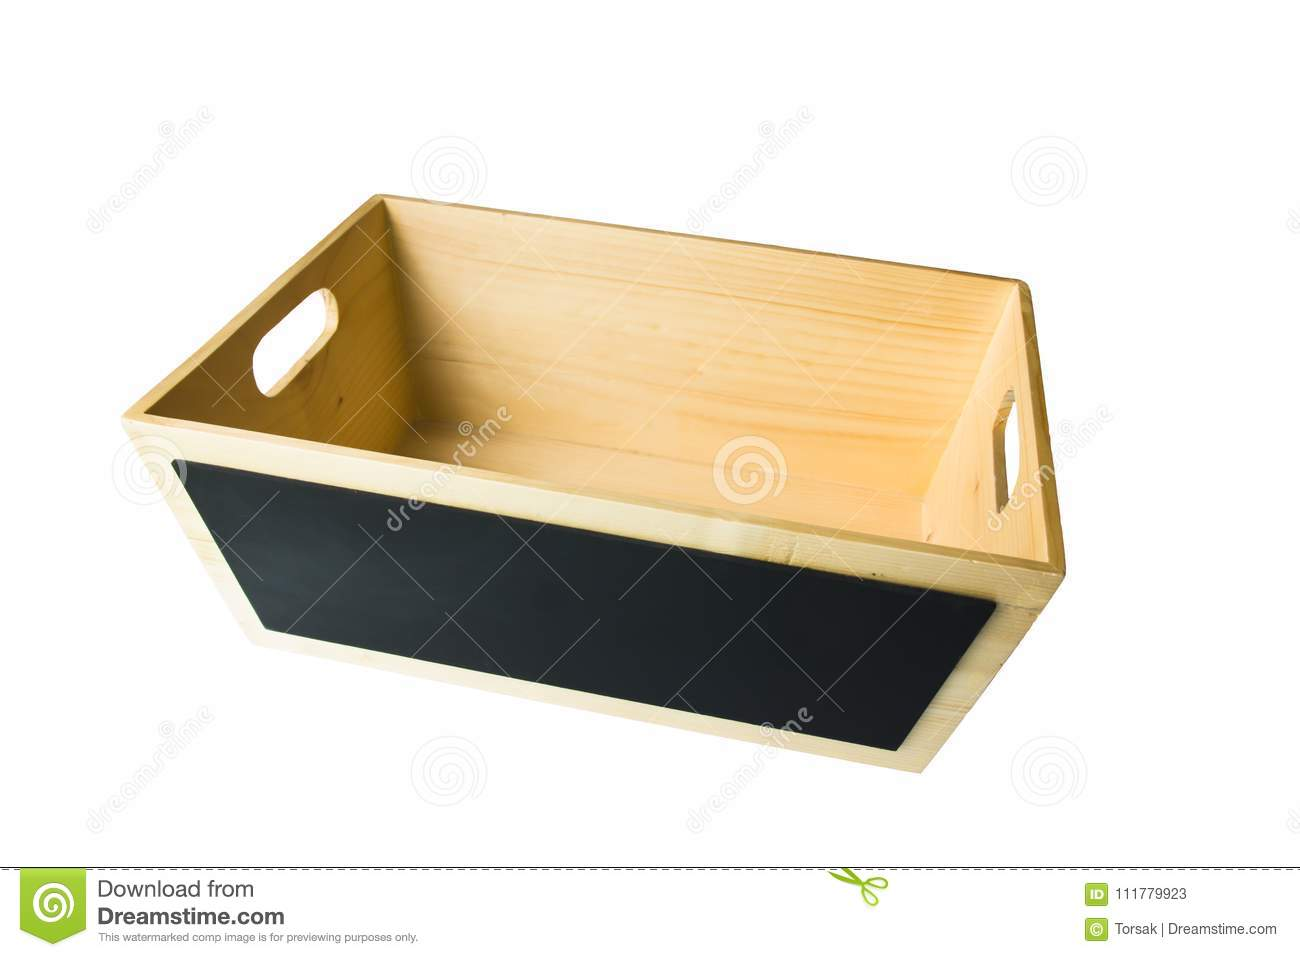 Wooden box isolated on white background